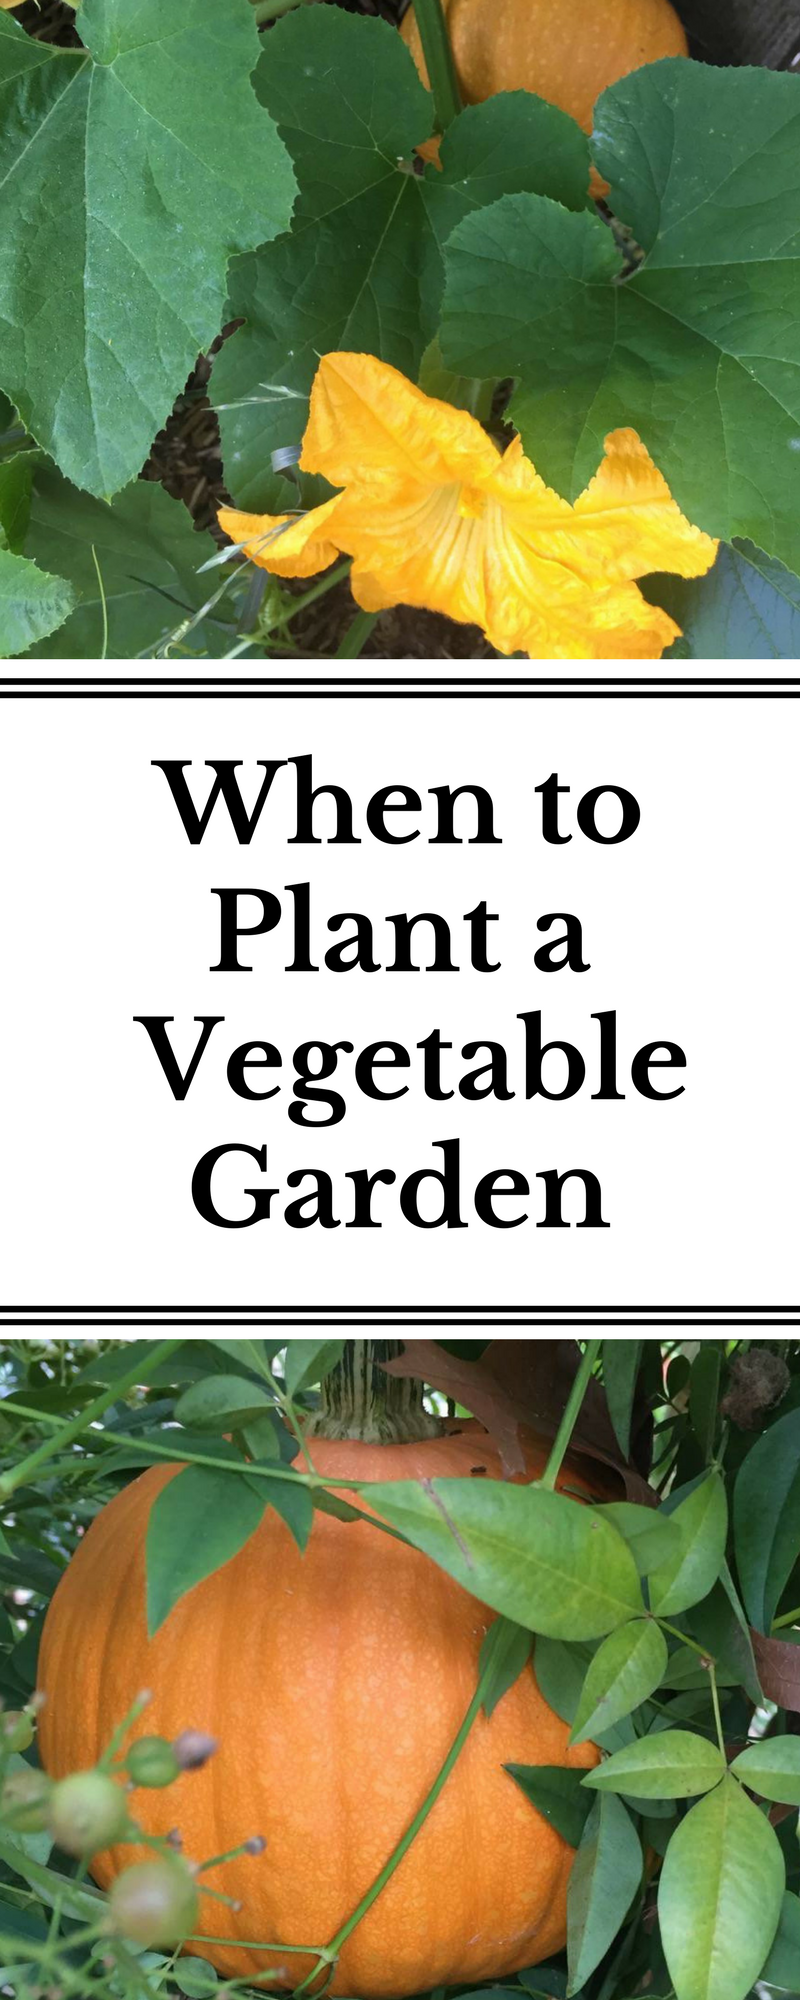 Learn The Best Time To Plant Vegetables Based On Your Growing Zone!